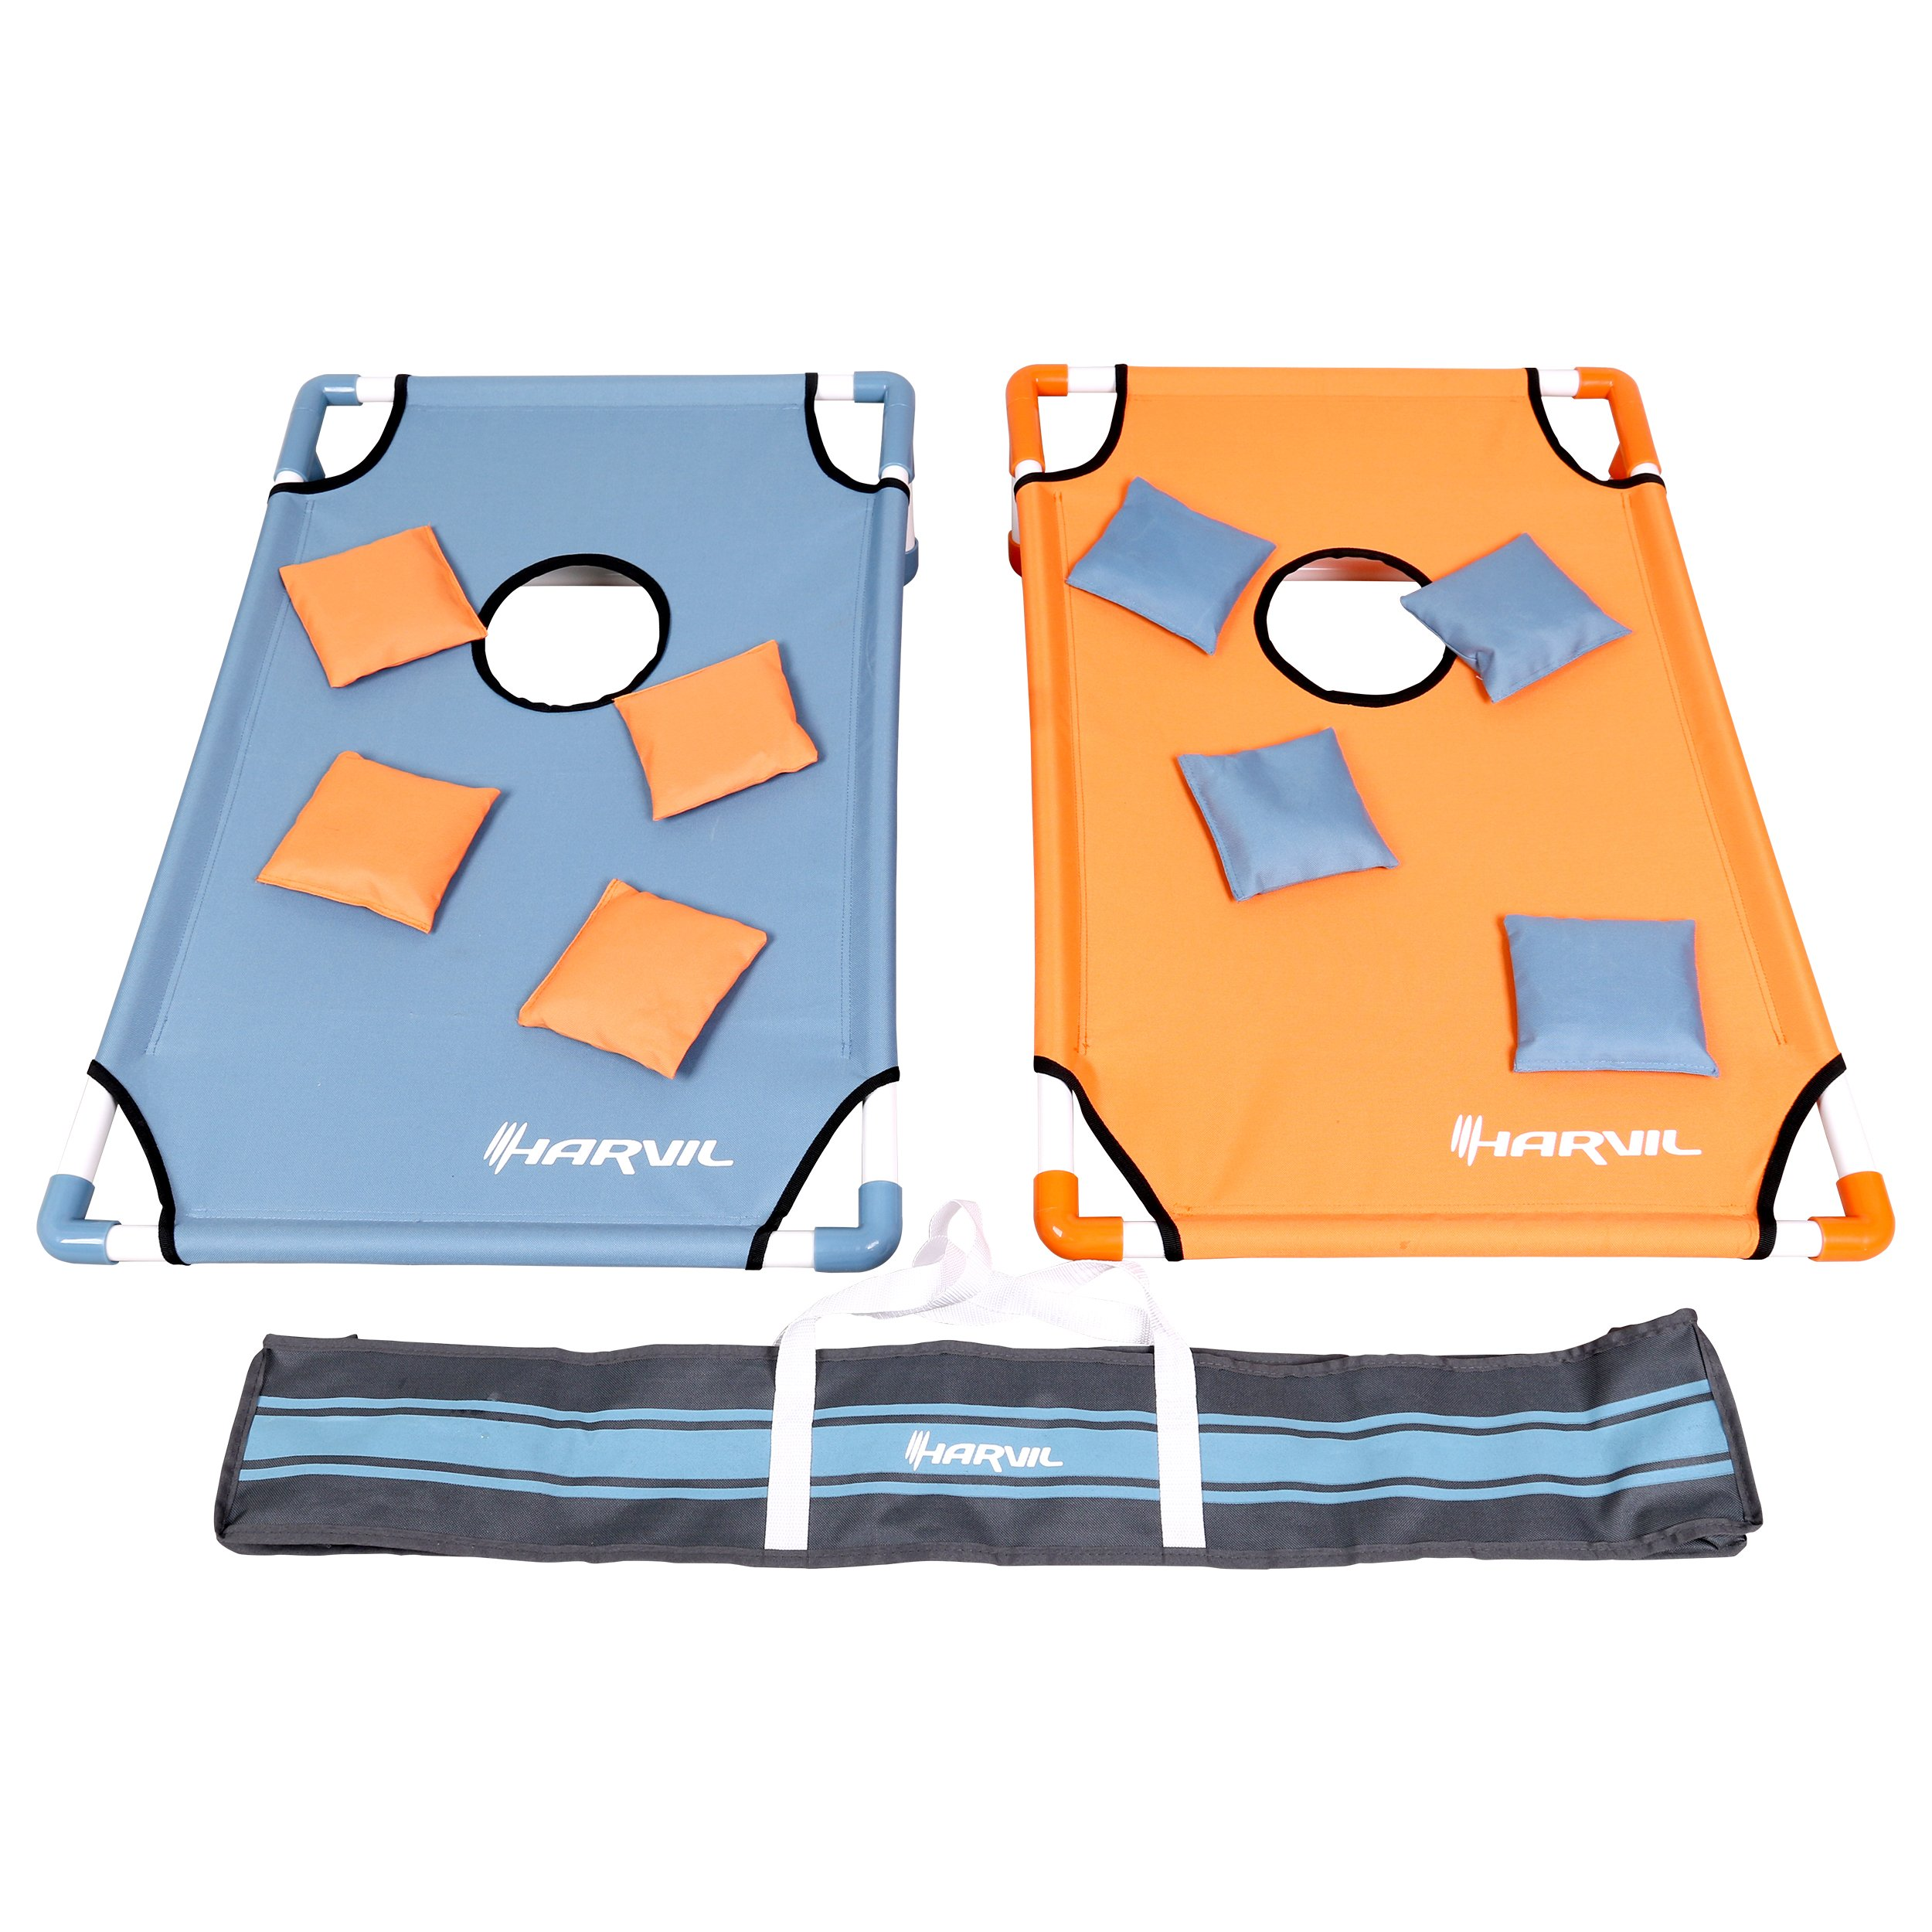 Harvil Portable Premium PVC Framed Cornhole Game Set 8 Double-Lined Bean Bags Carrying Case by Harvil